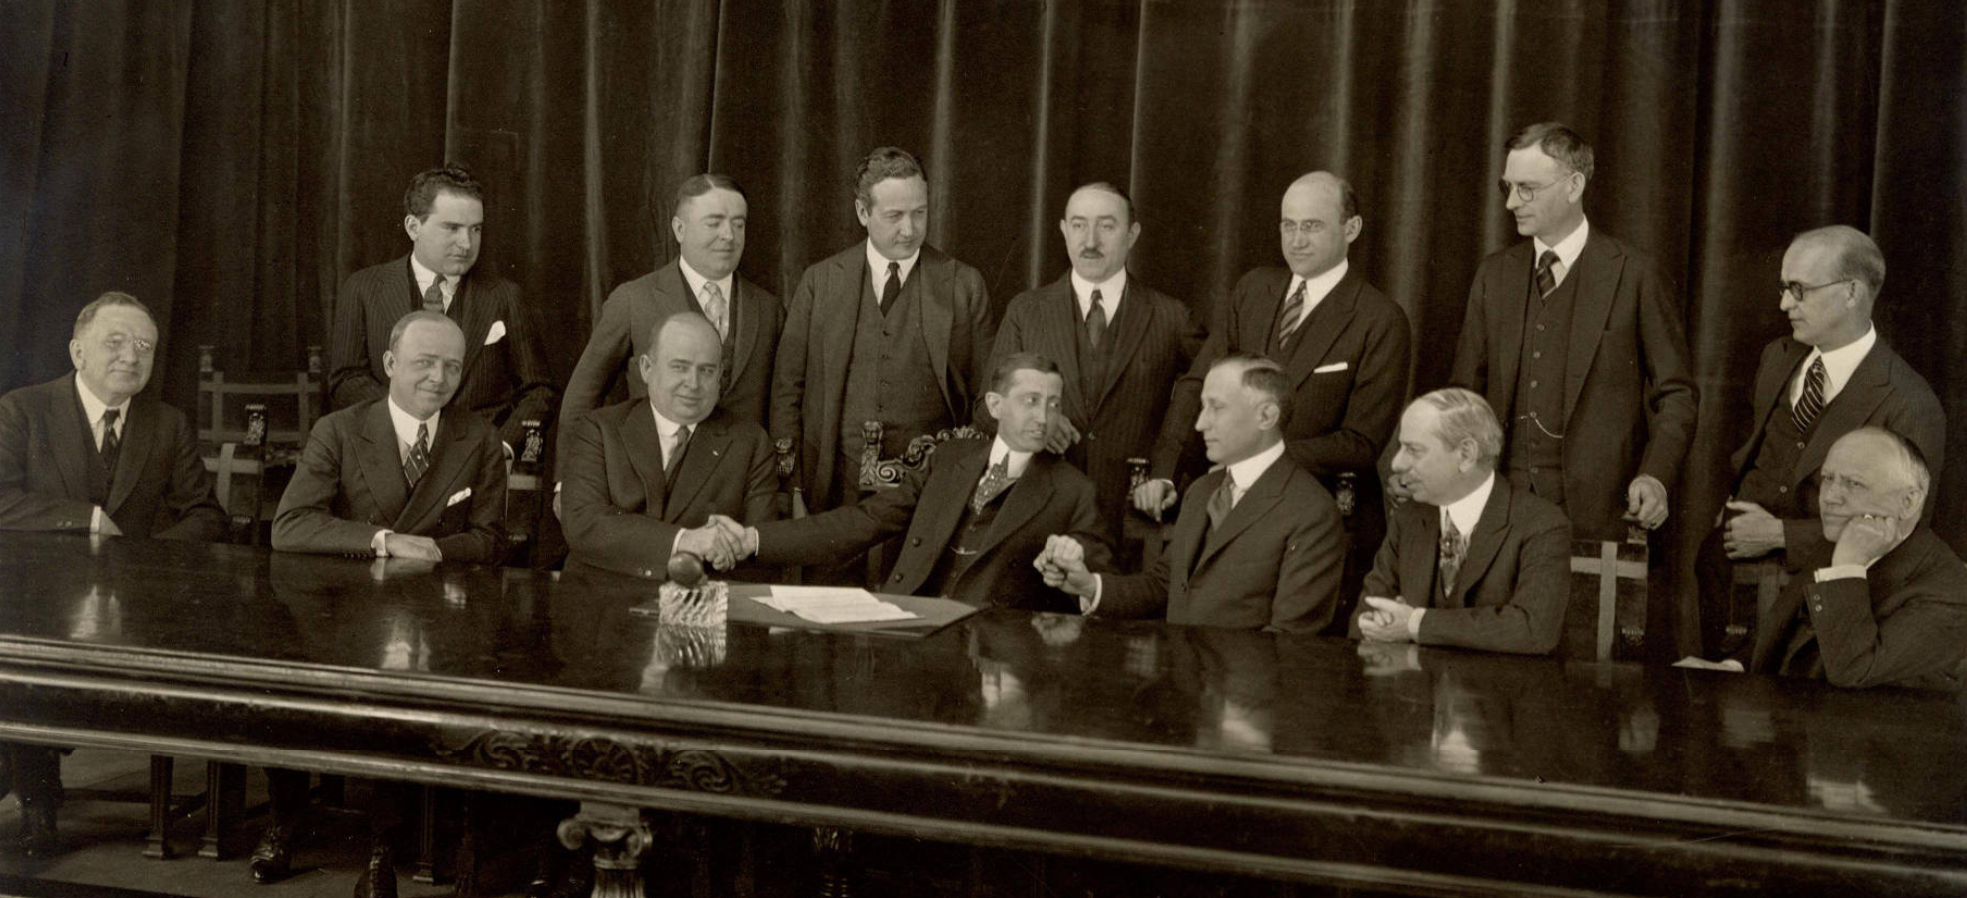 Photo of the first meeting of the Motion Picture Producers and Distributors of America (MPPDA) in 1922